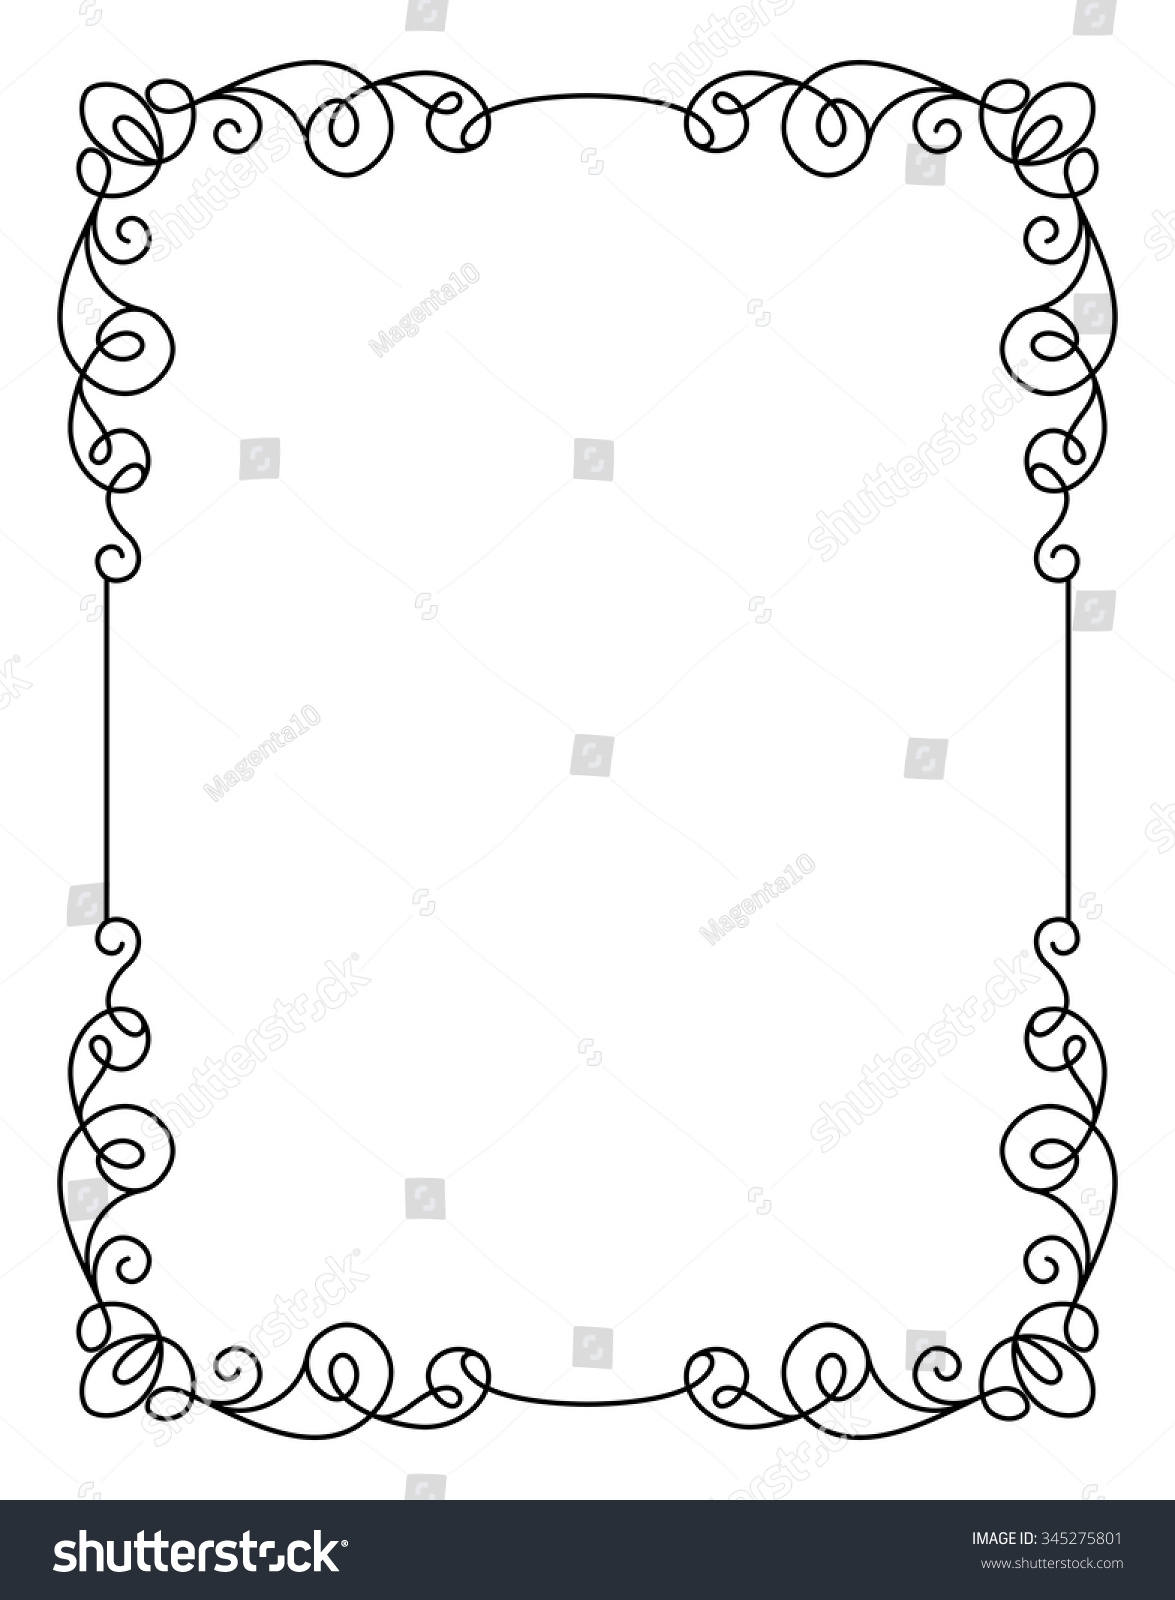 Calligraphic Rectangle Frame Simple Frame Ornament Stock Vector ...